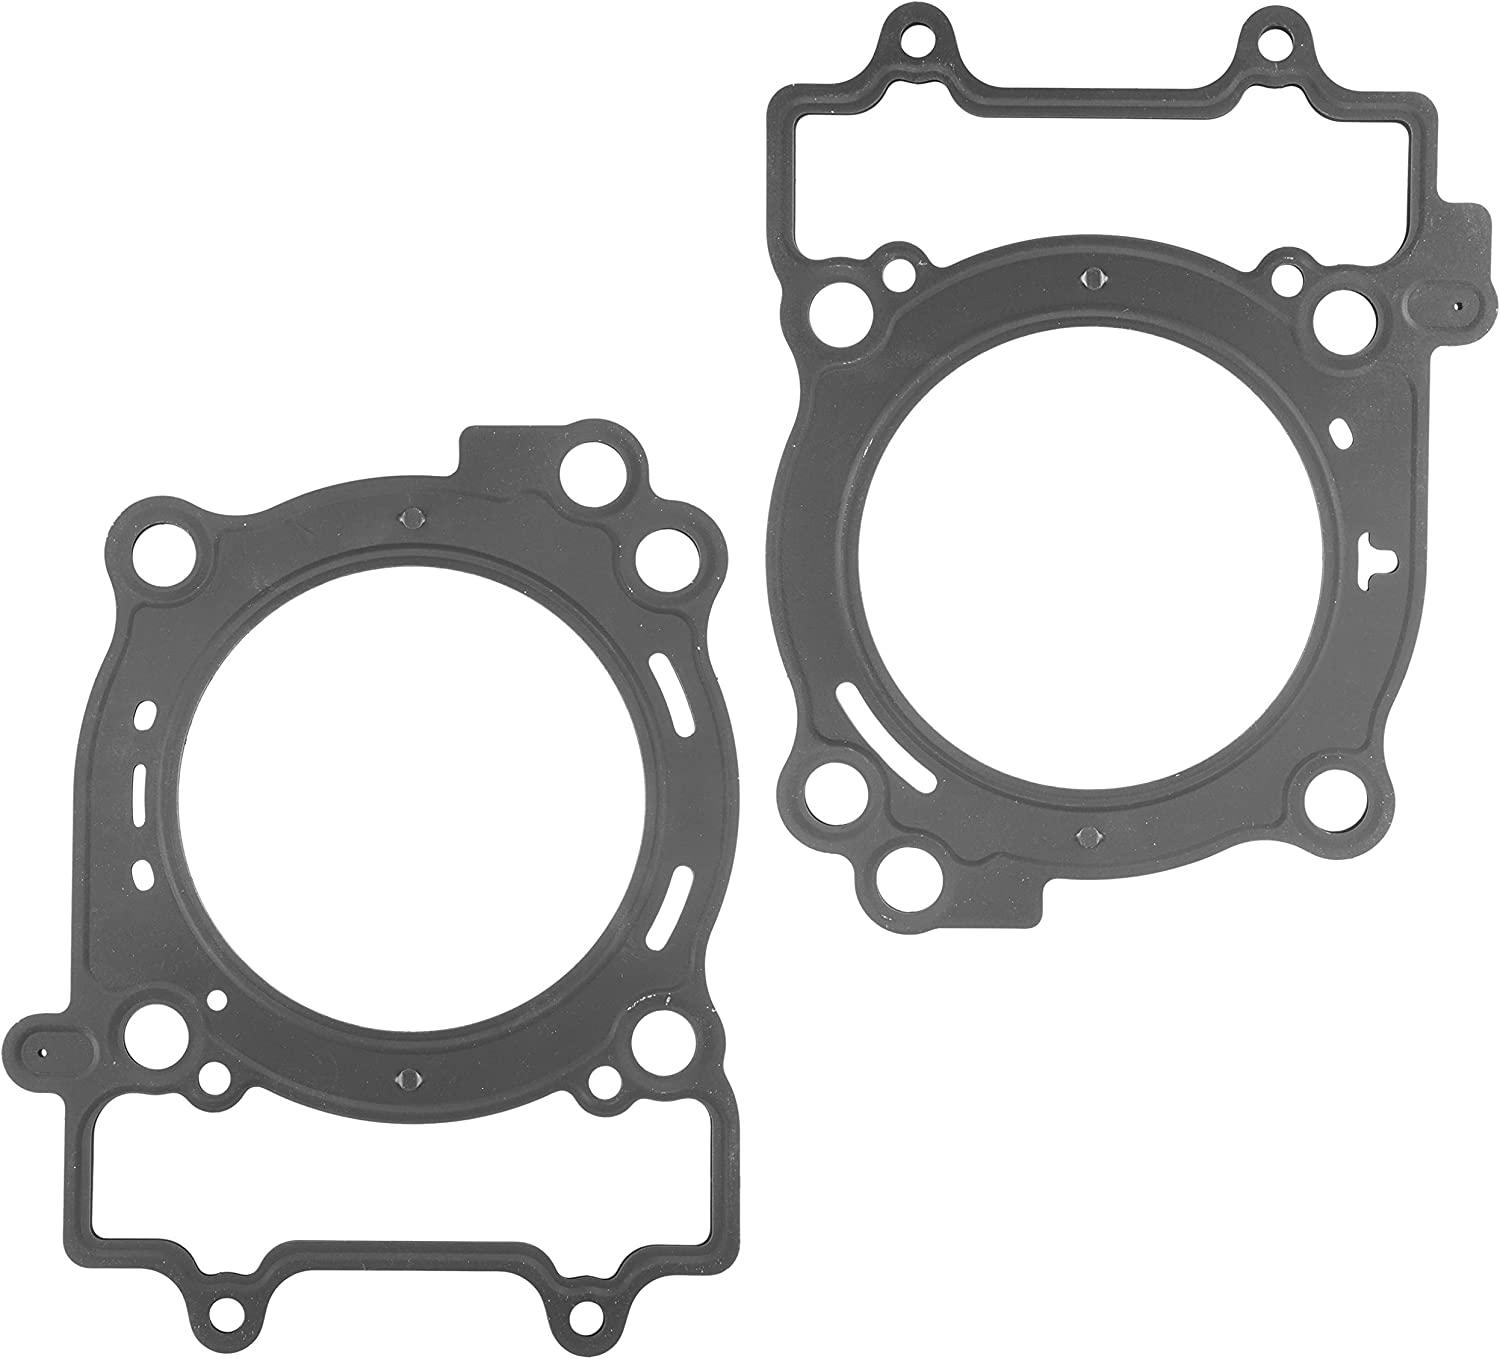 Caltric compatible with Cylinder Head Gasket Polaris ACE 570 2016 2017 2018 2019 2206222